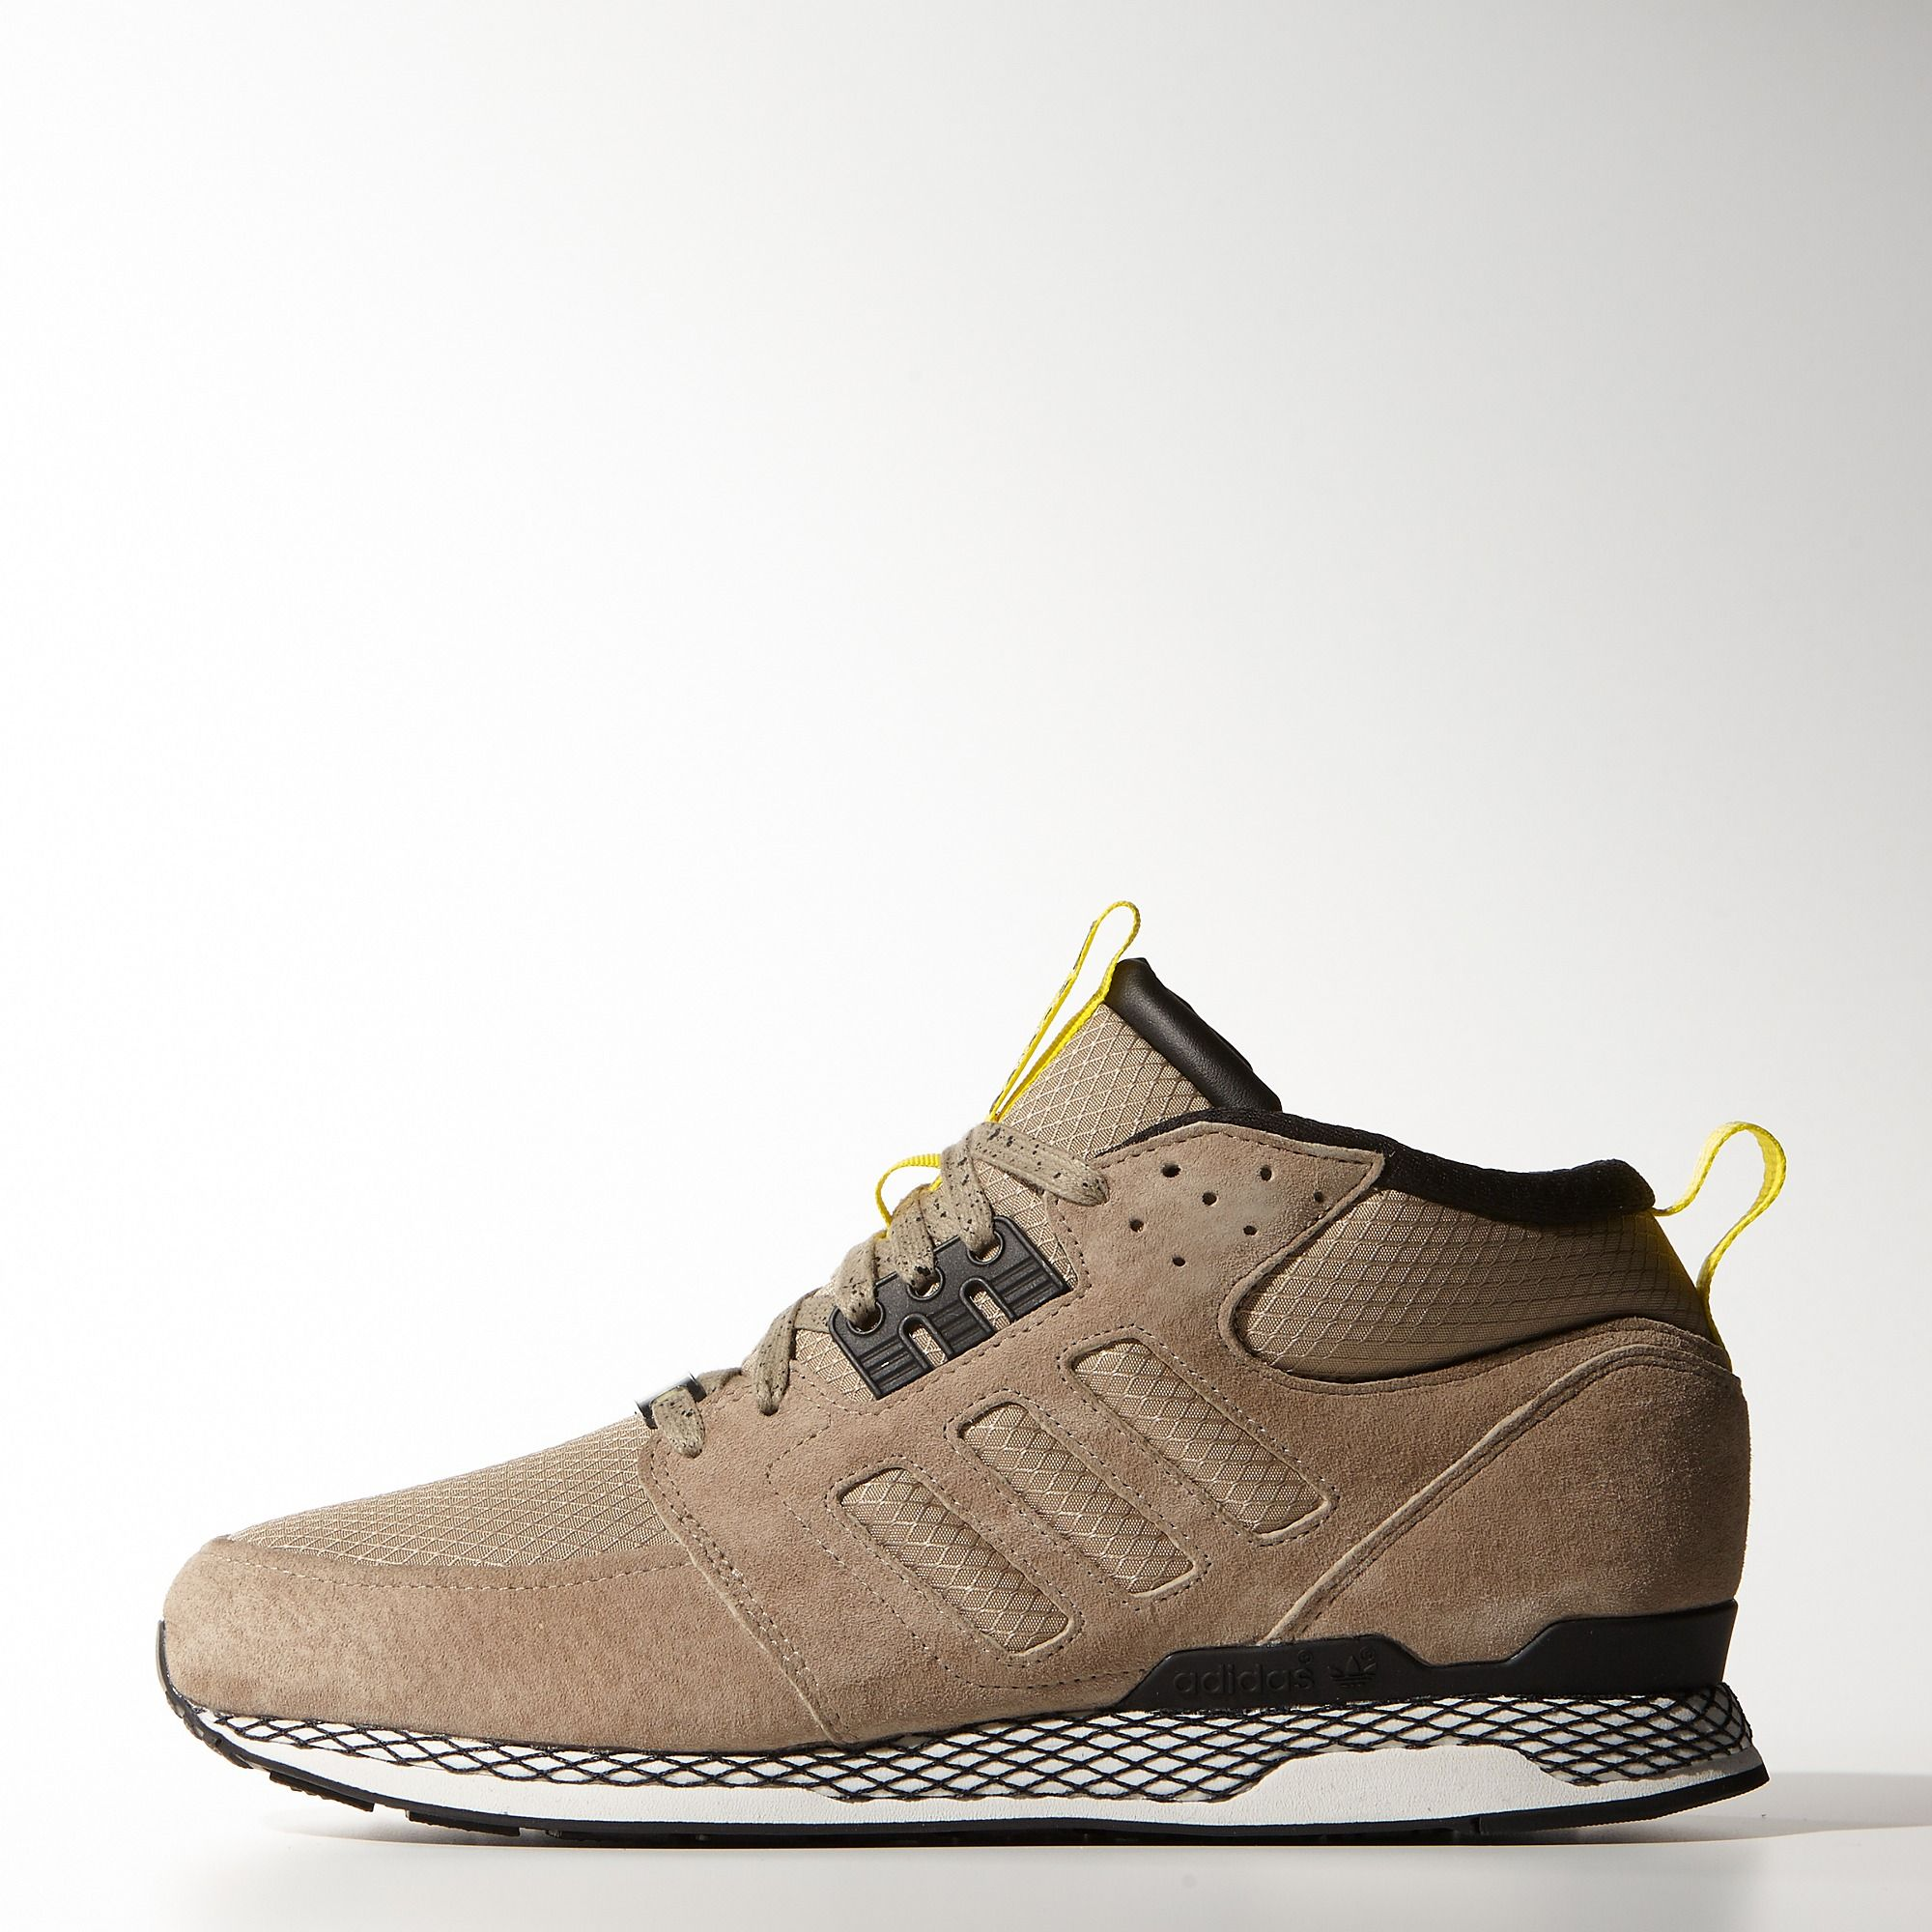 adidas ZX Casual Mid Shoes | adidas US | Adidas zx, Vintage style ...